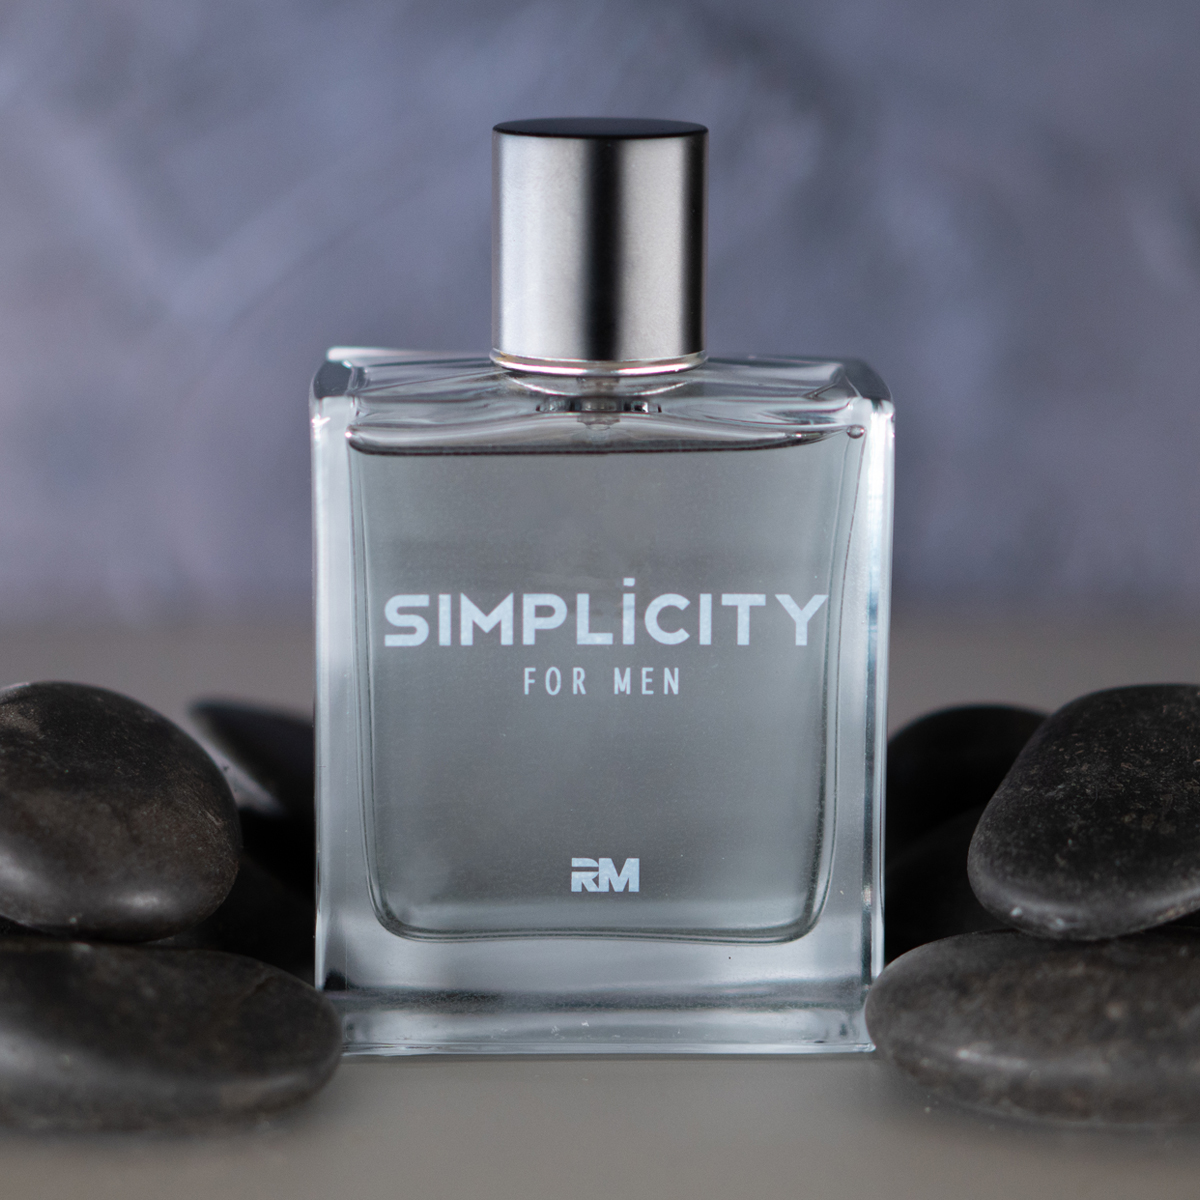 Simplicity for men